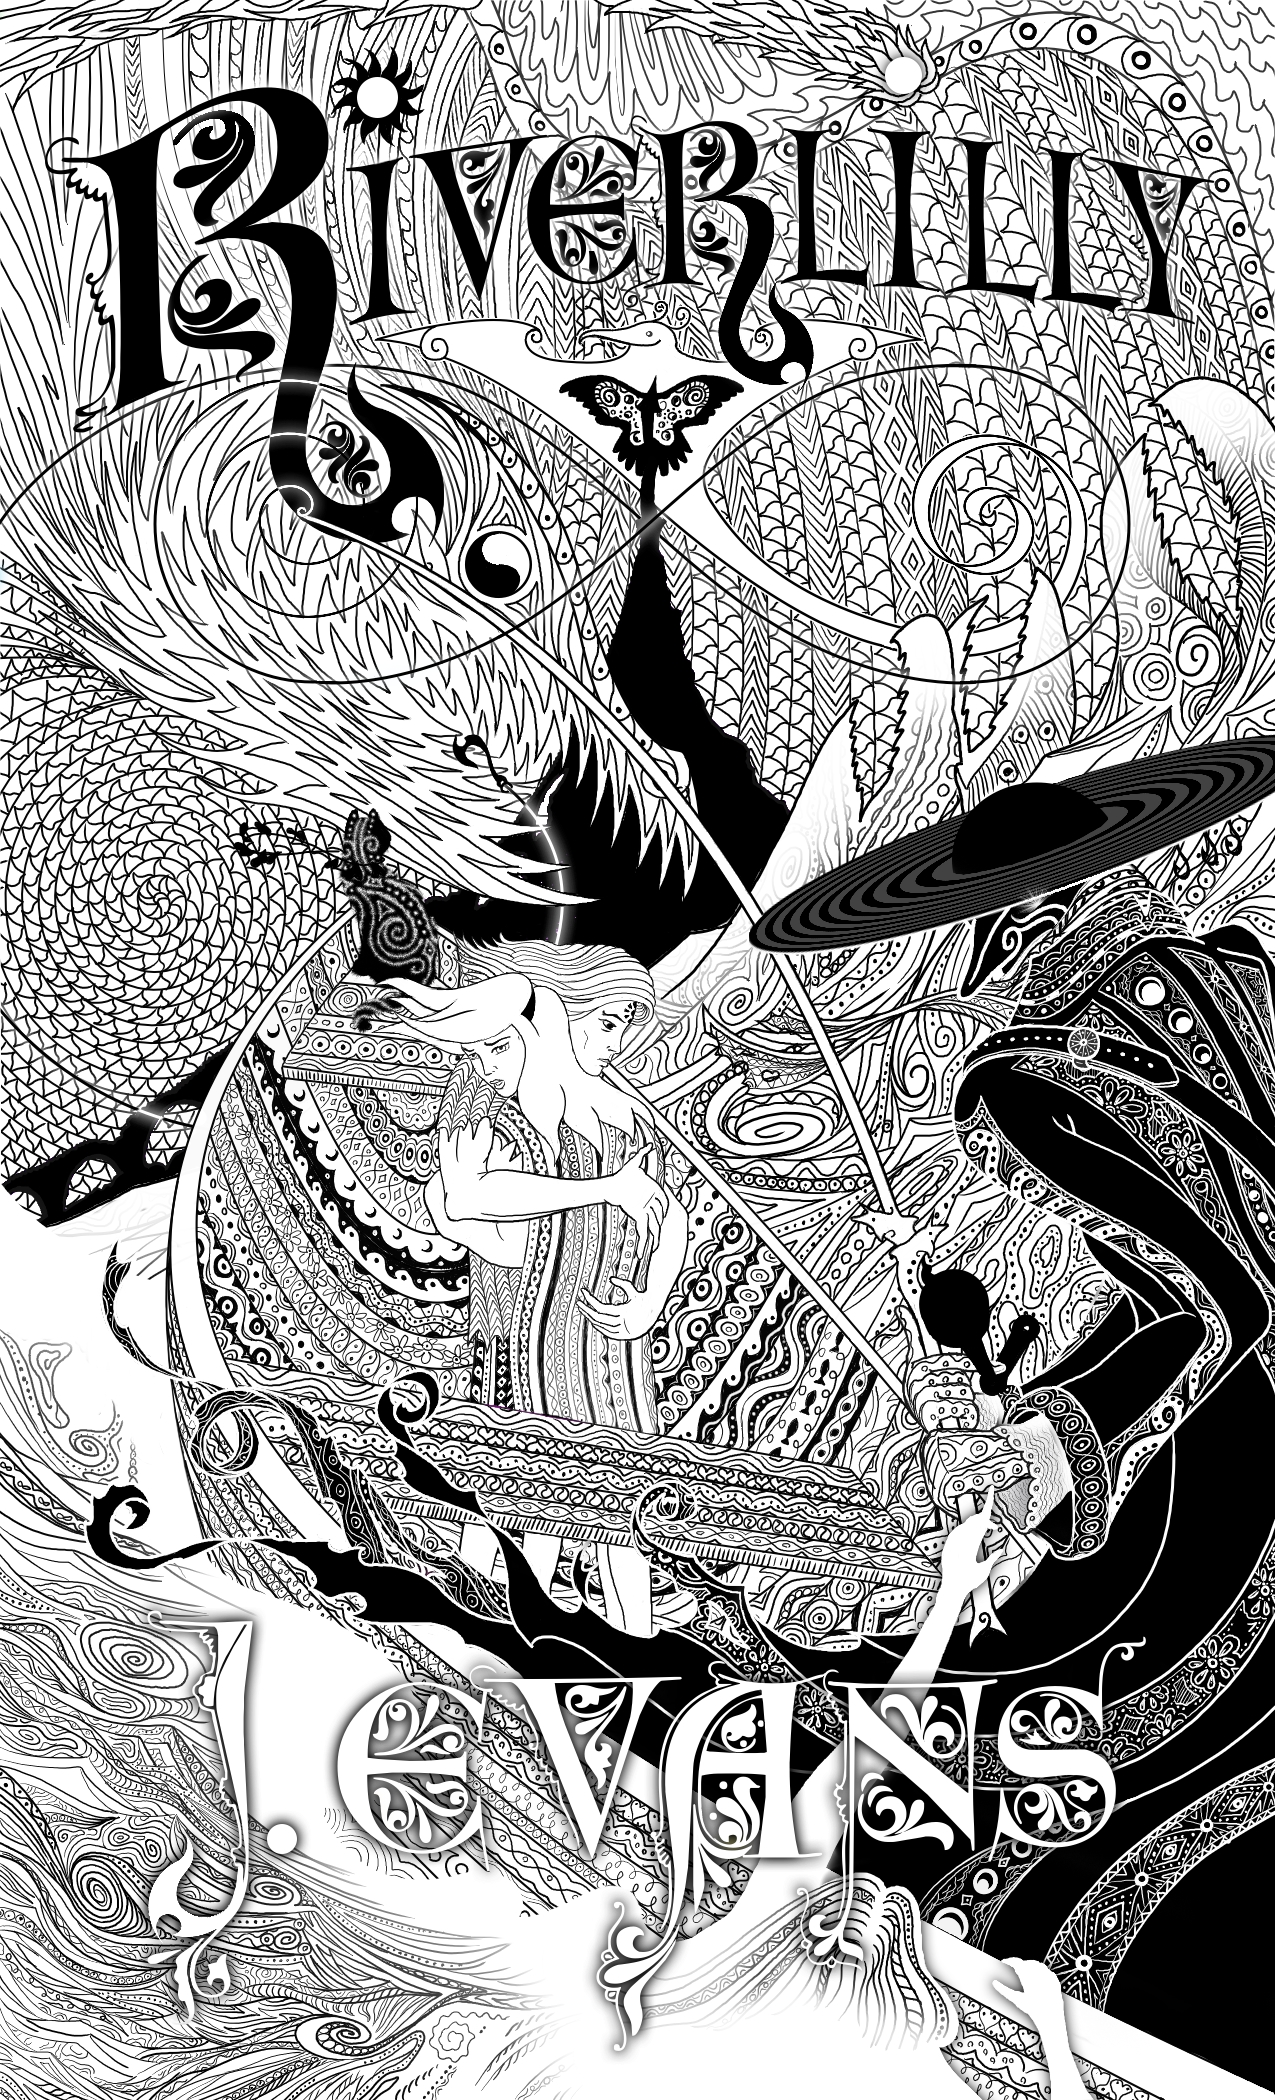 front cover b&w.JPG